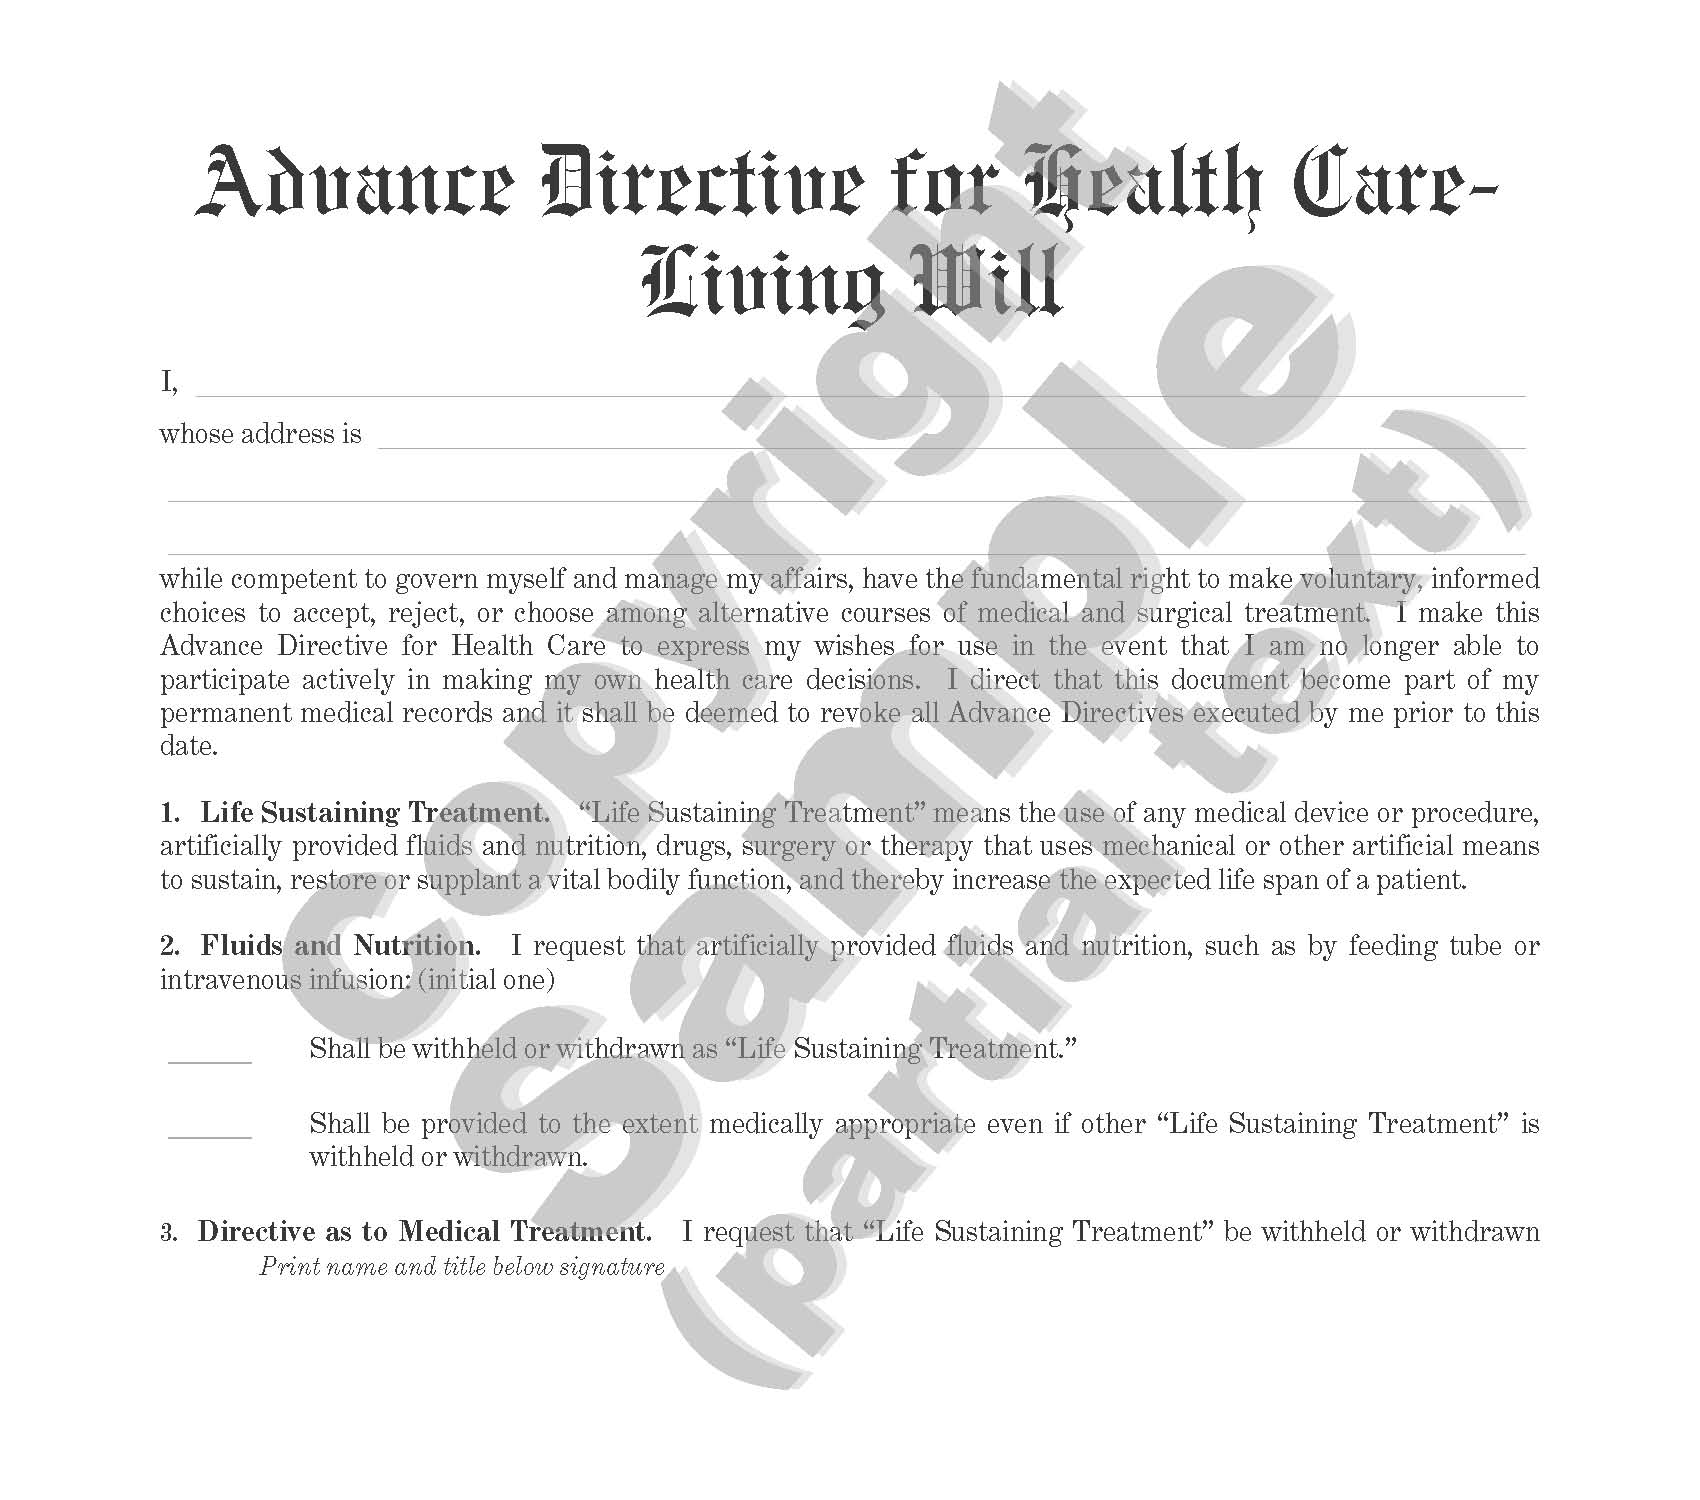 Advance Directive for Health Care - Living Will